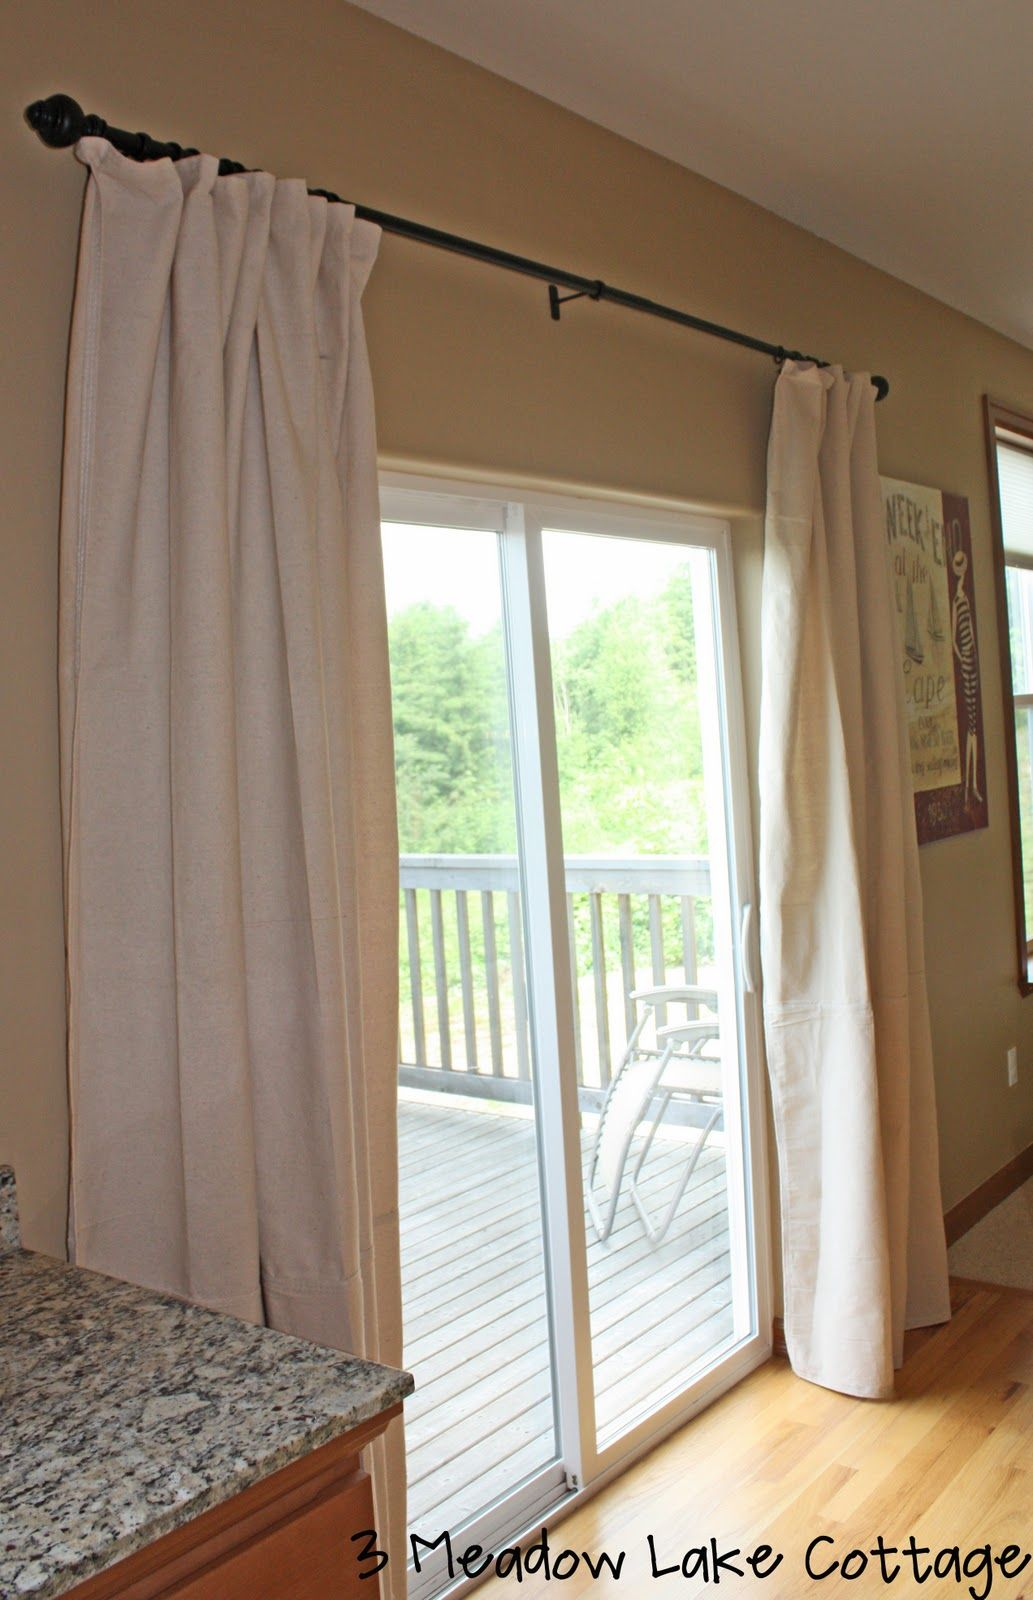 Patio Door Coverings Bamboo Curtains For Patio Doors Could Bamboo